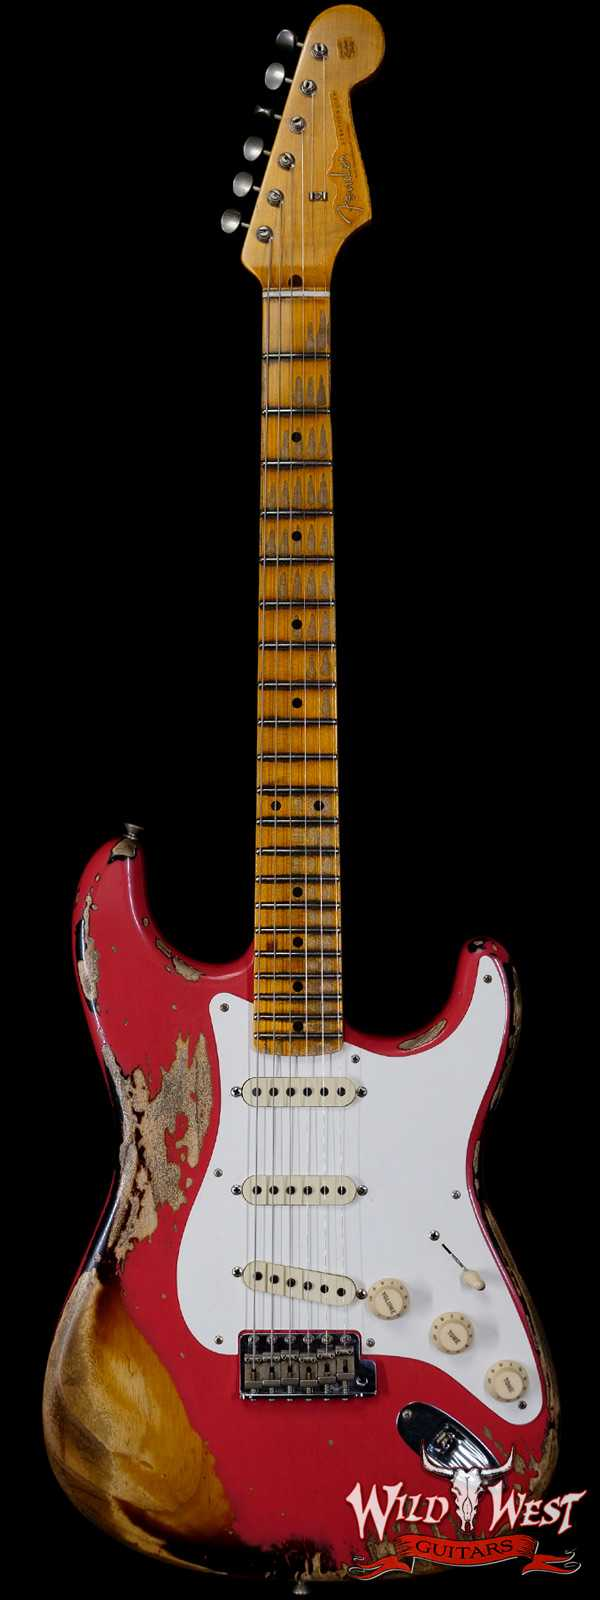 Fender Custom Shop Limited Edition 1957 Stratocaster Heavy Relic Hand-Wound Pickups Fiesta Red over 2 Tone Sunburst